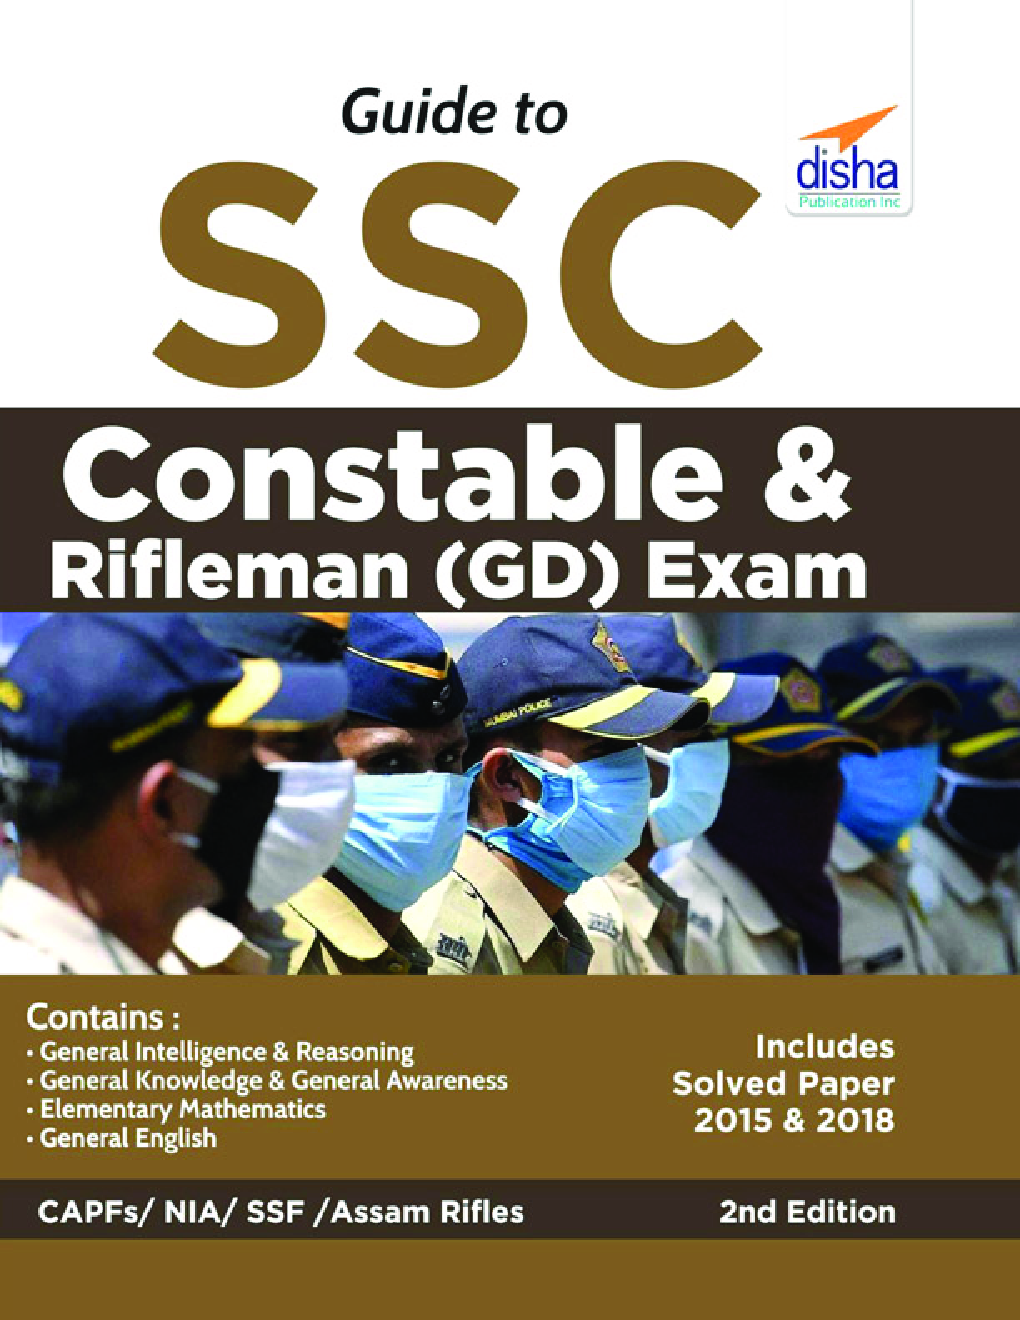 Guide To SSC Constable & Rifleman (GD) Exam 2nd Edition   - Page 1